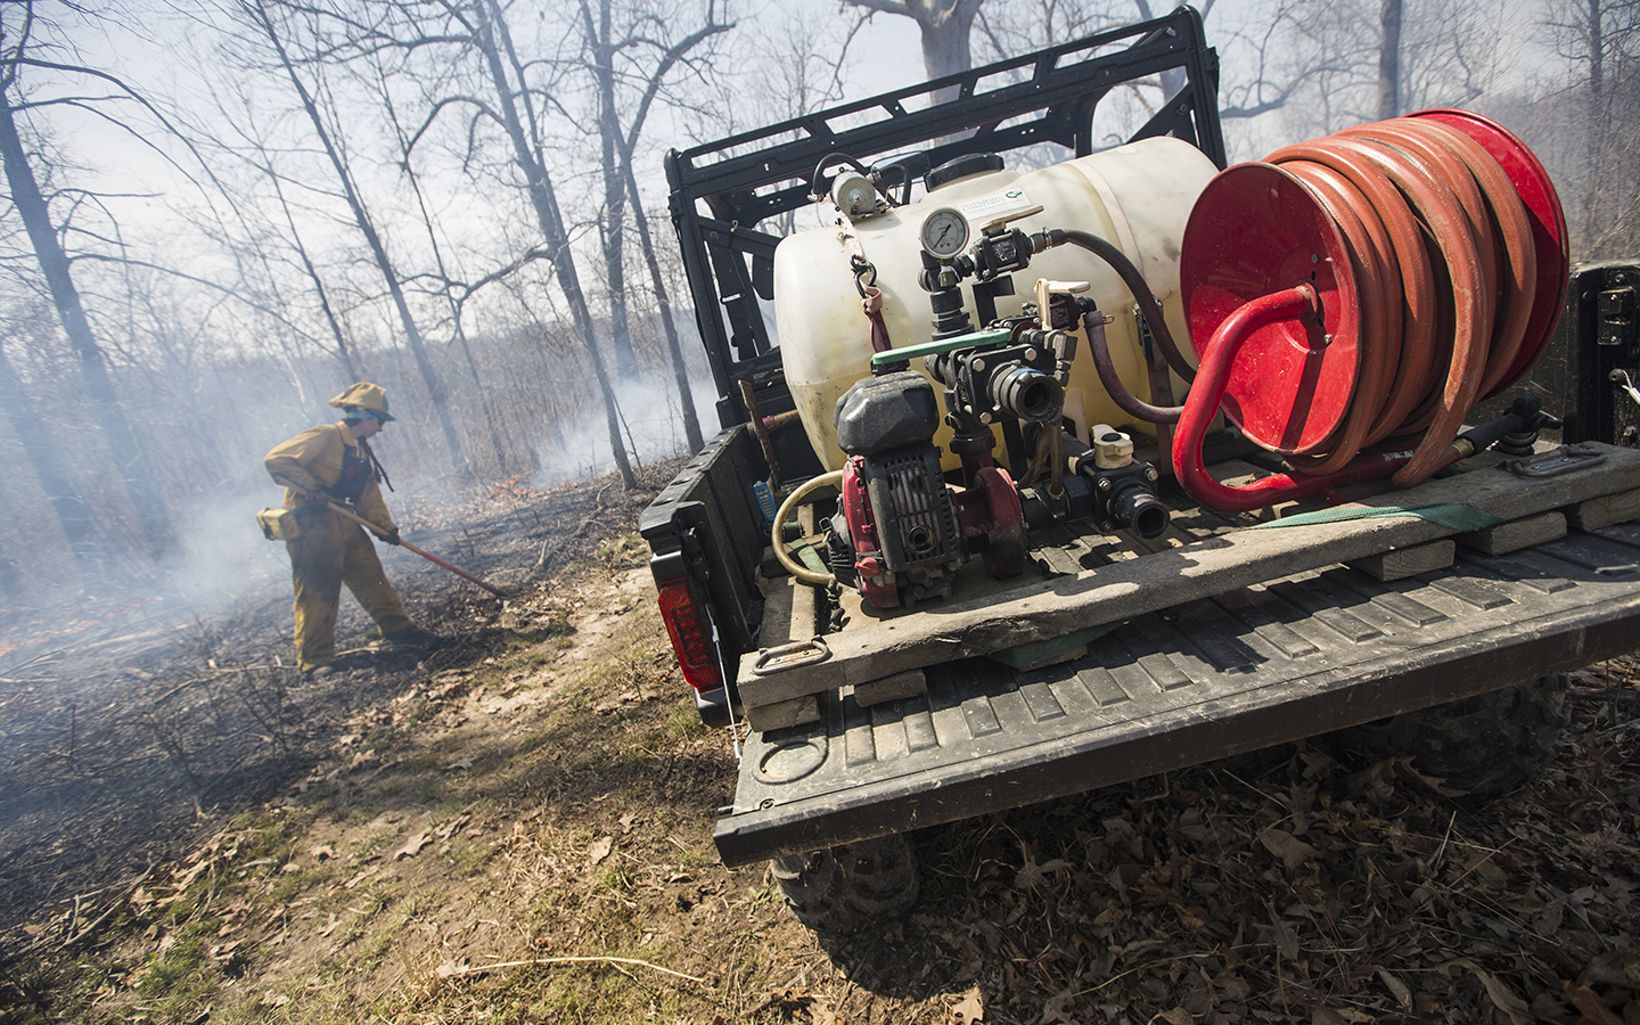 Fire personnel rakes a burned area after a fire next to a water truck.